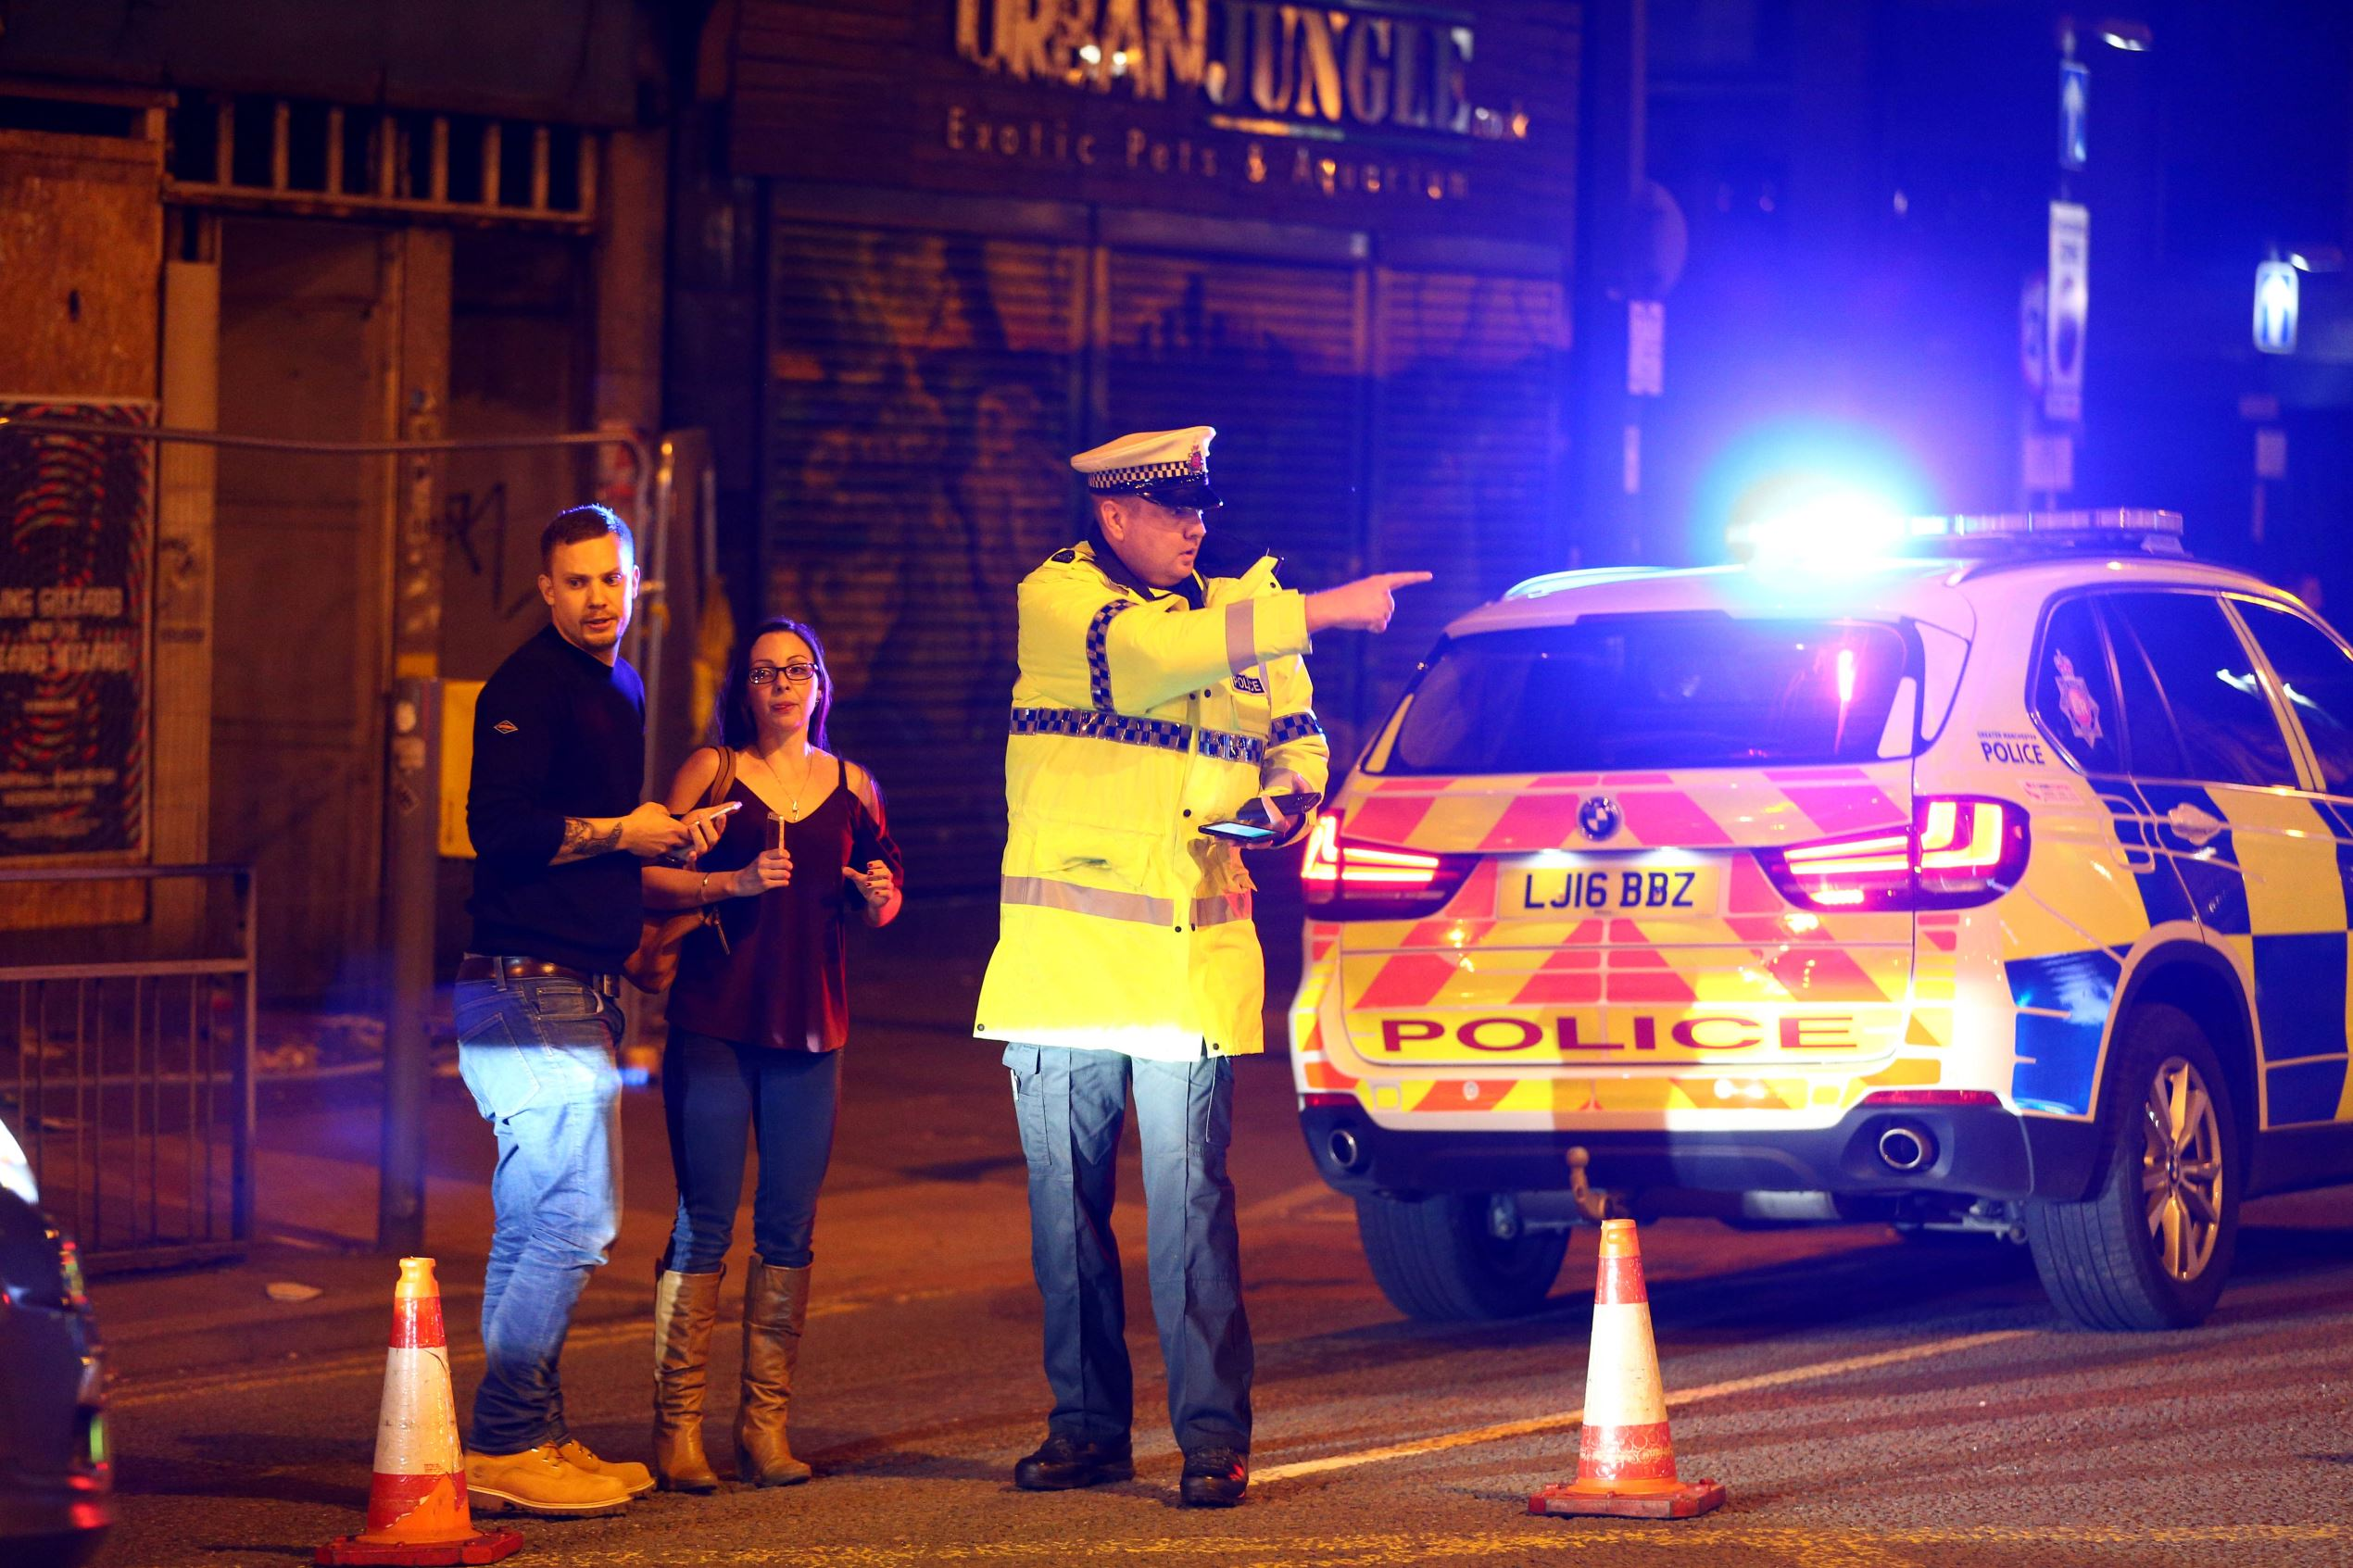 Police stand by a cordoned off street close to the Manchester Arena on May 22, 2017 in Manchester, England. There have been reports of explosions at Manchester Arena where Ariana Grande had performed this evening. Greater Manchester Police have have confirmed there are fatalities and warned people to stay away from the area.